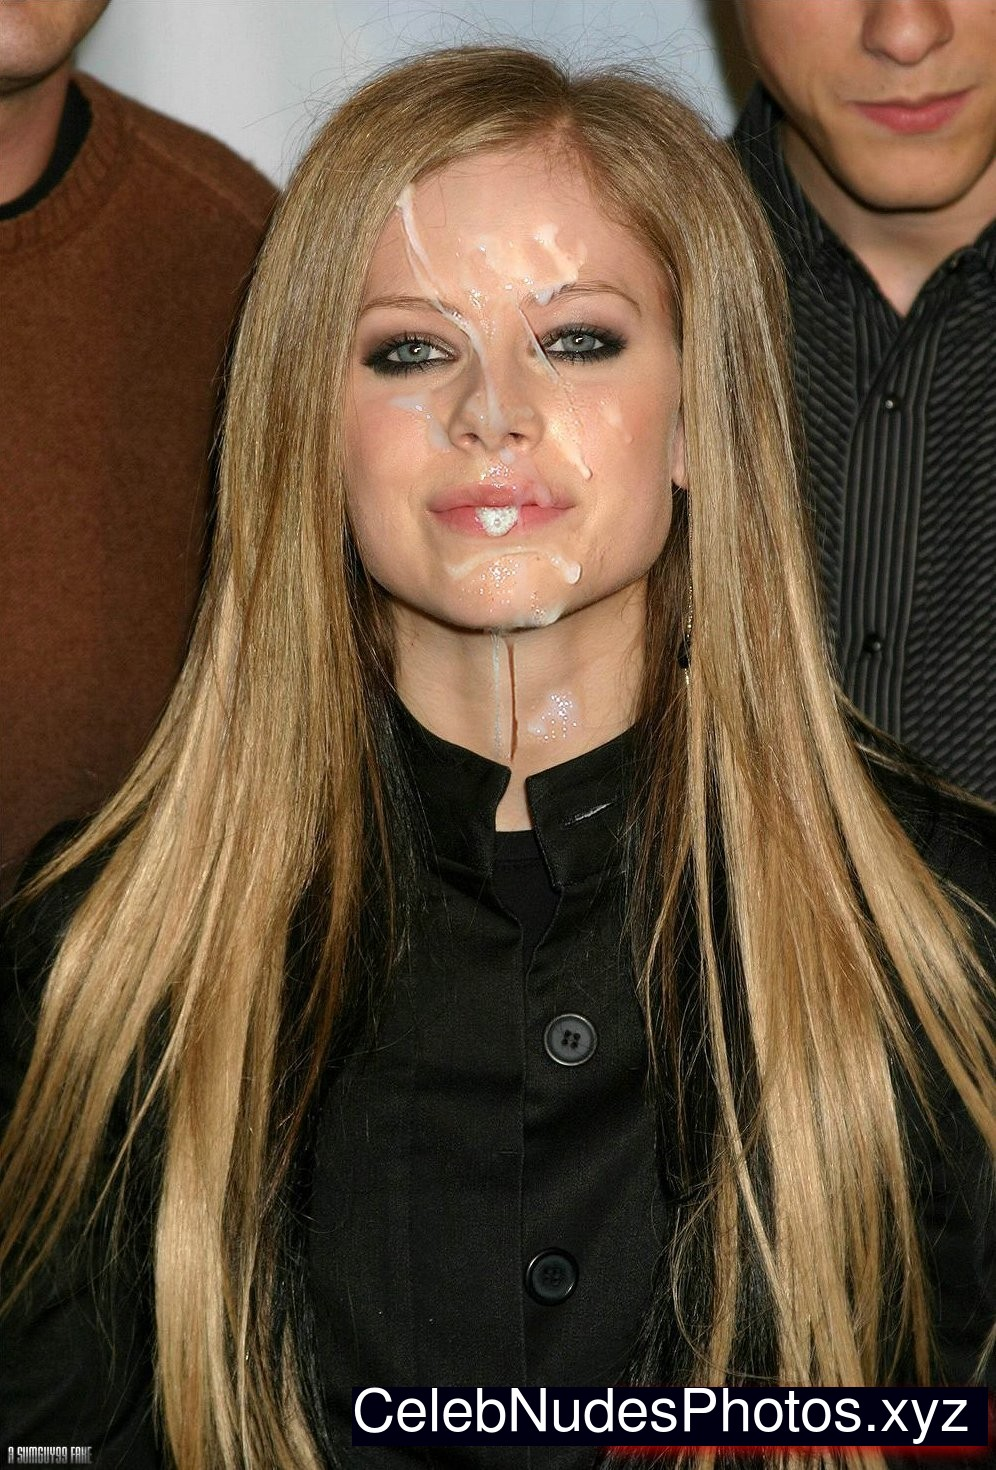 Fucking avril lavigne porn pic that ass